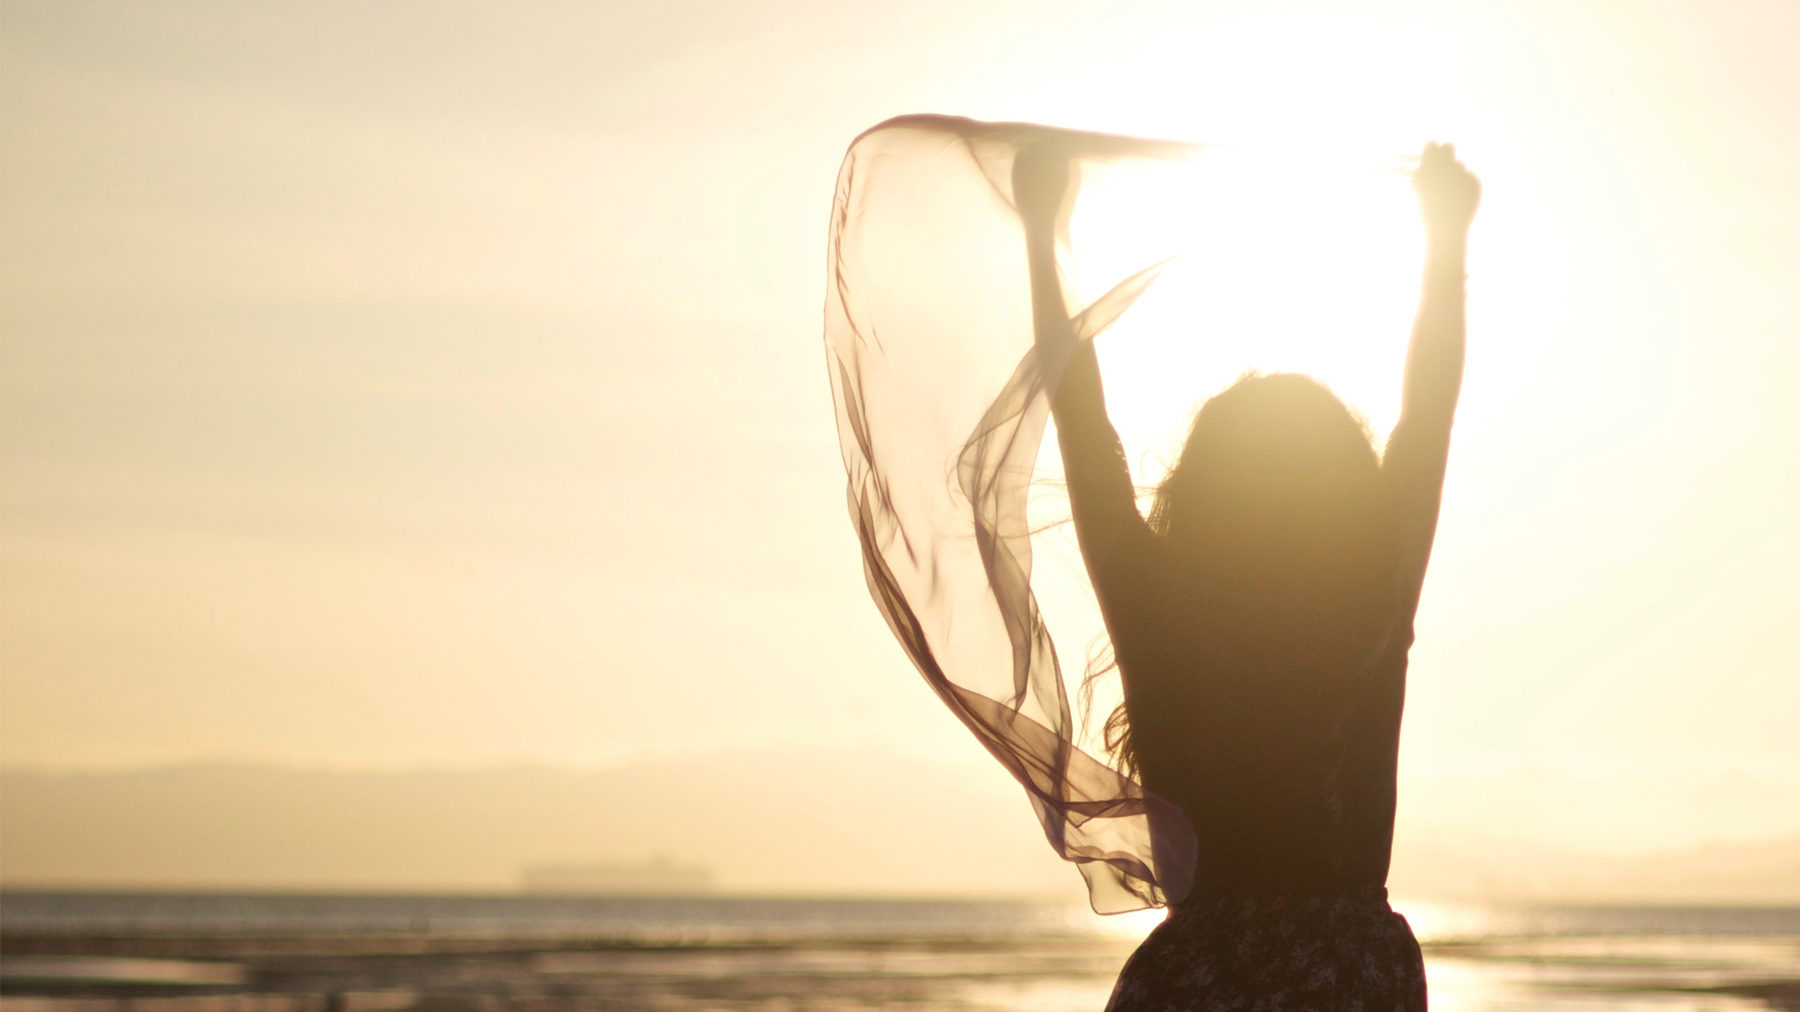 A woman holds her hands in victory while overlooking an ocean